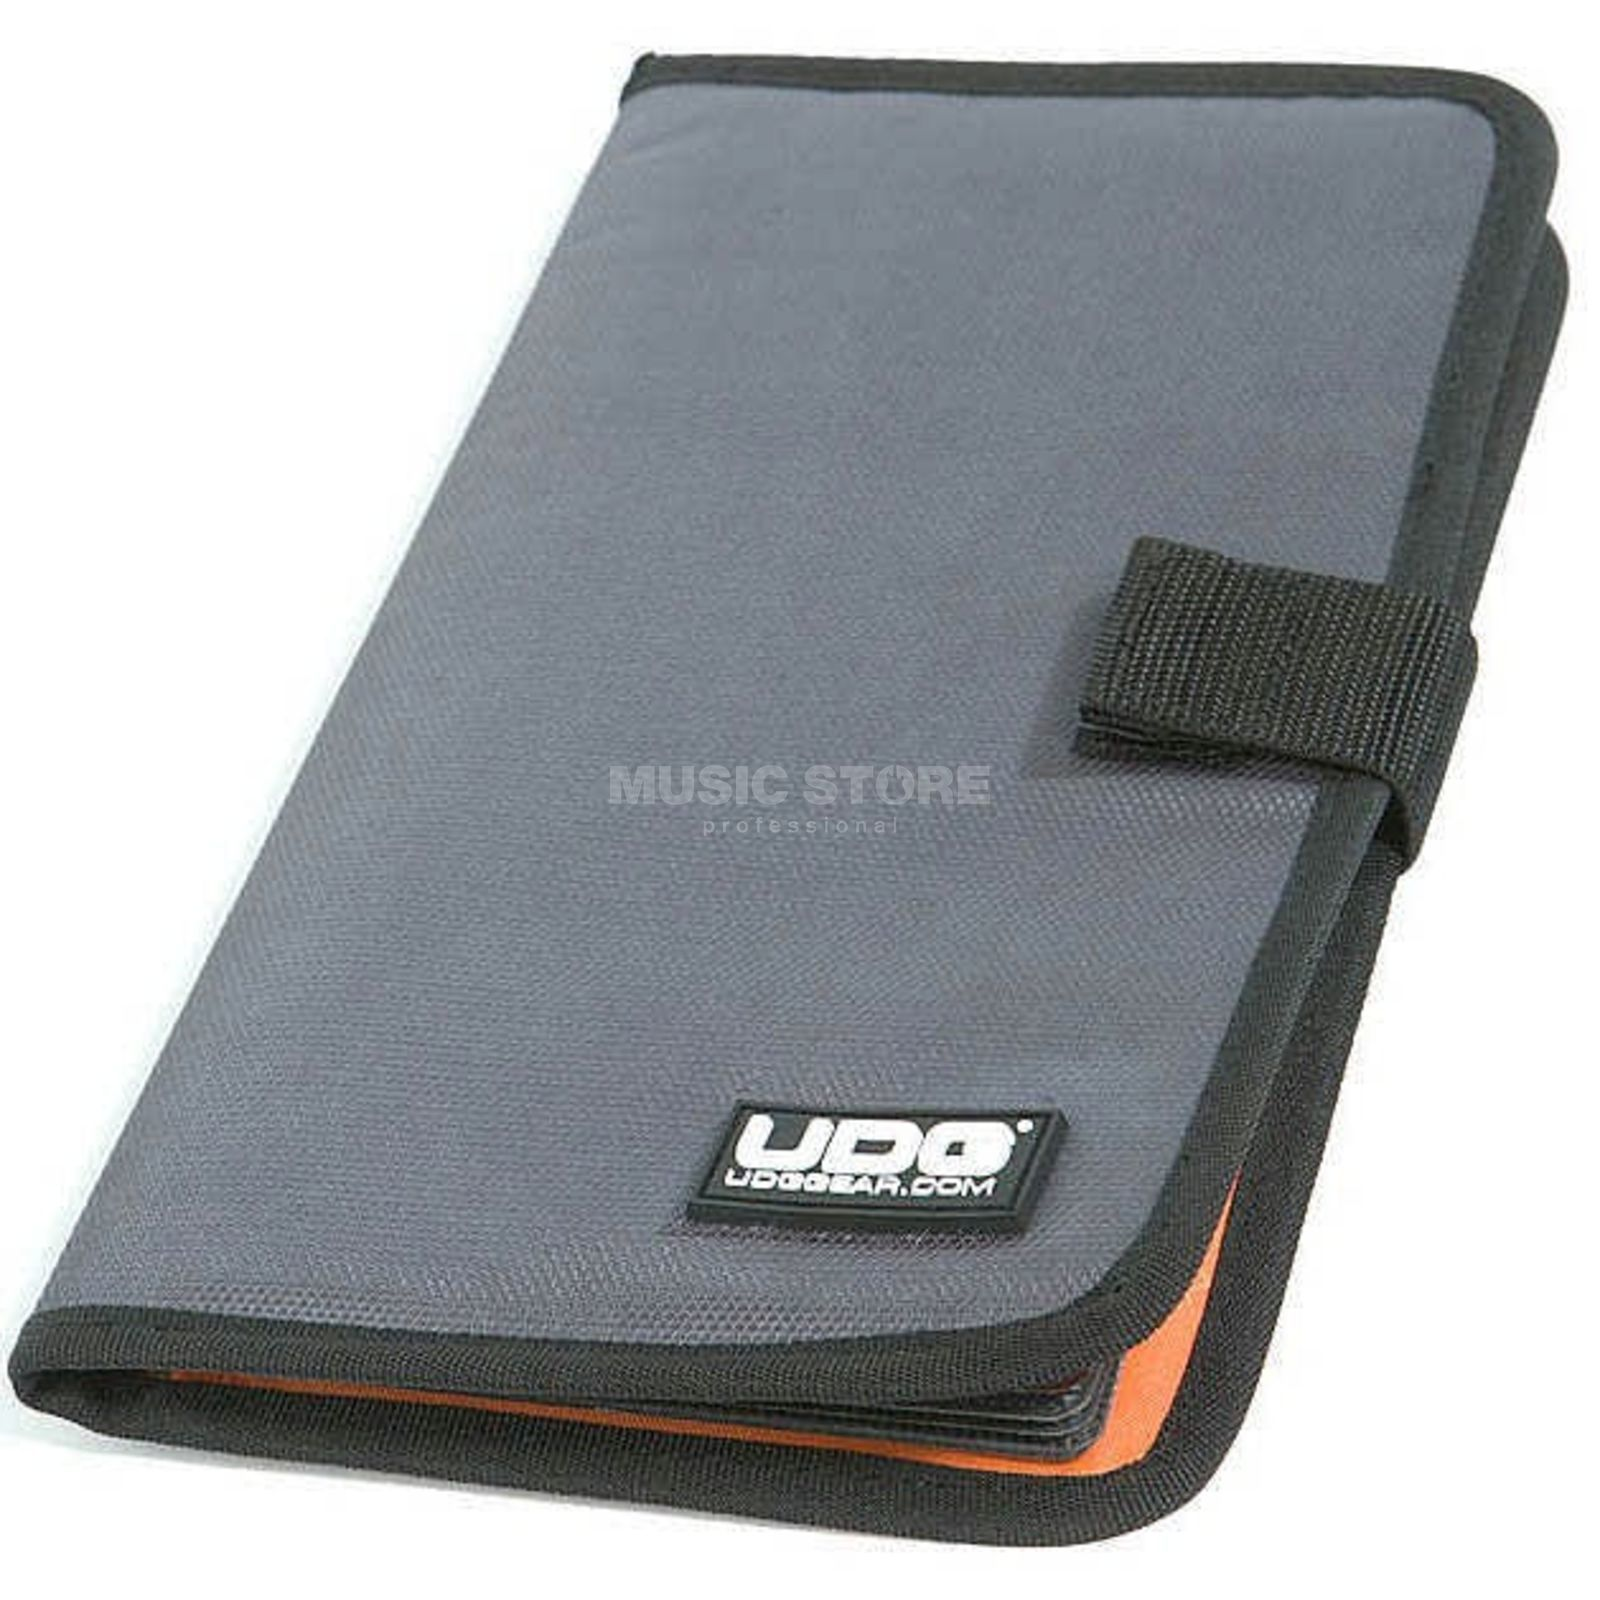 UDG CD Wallet 24 Steel Grey/Orange Inside U9980SG/OR Product Image